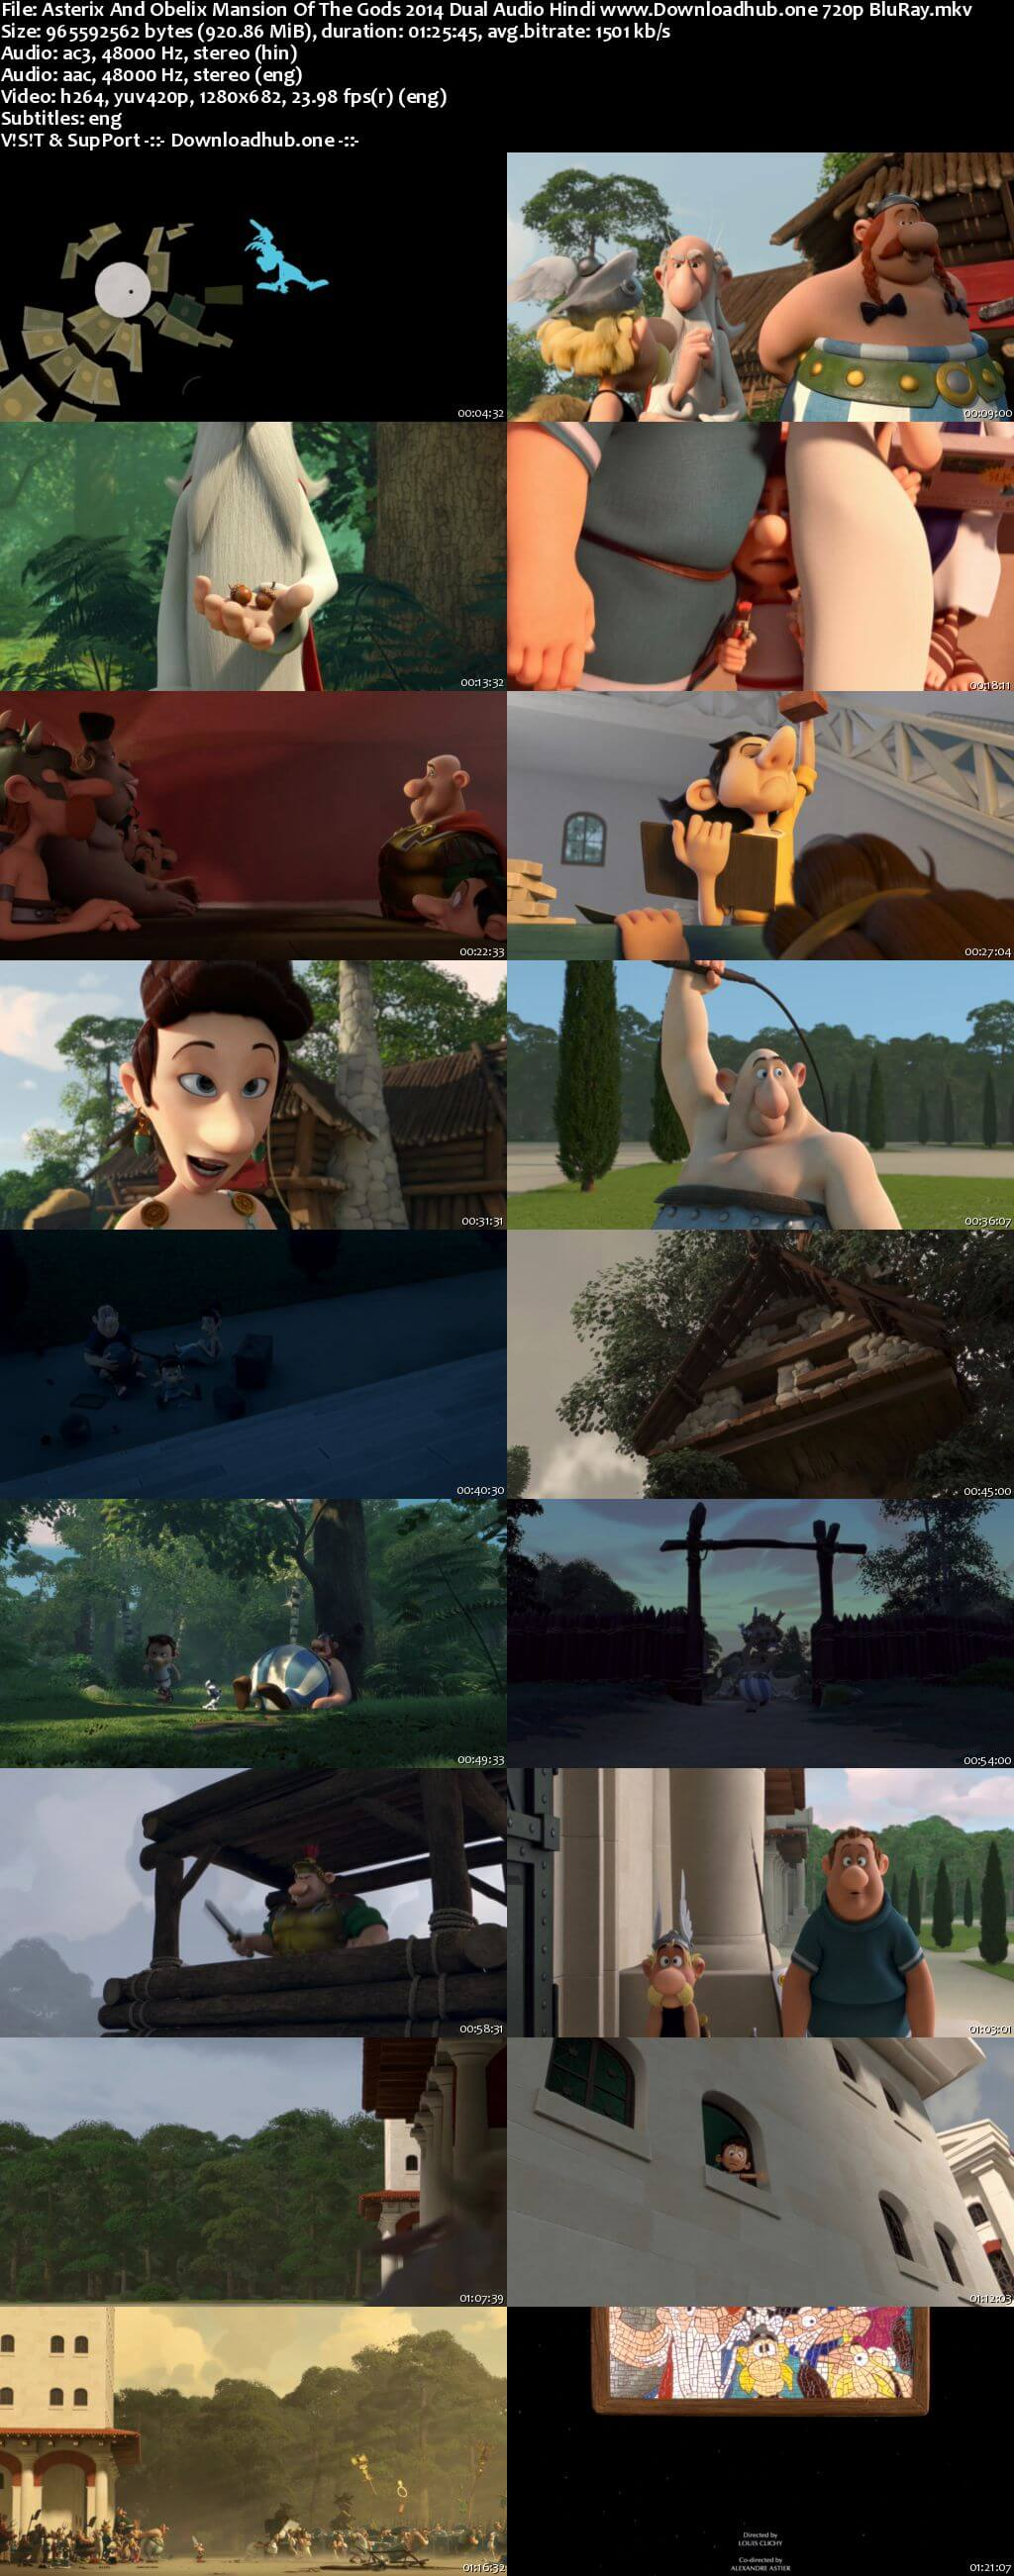 Download Asterix and Obelix Mansion of the Gods 2014 Hindi Dual Audio 720p BluRay ESubs